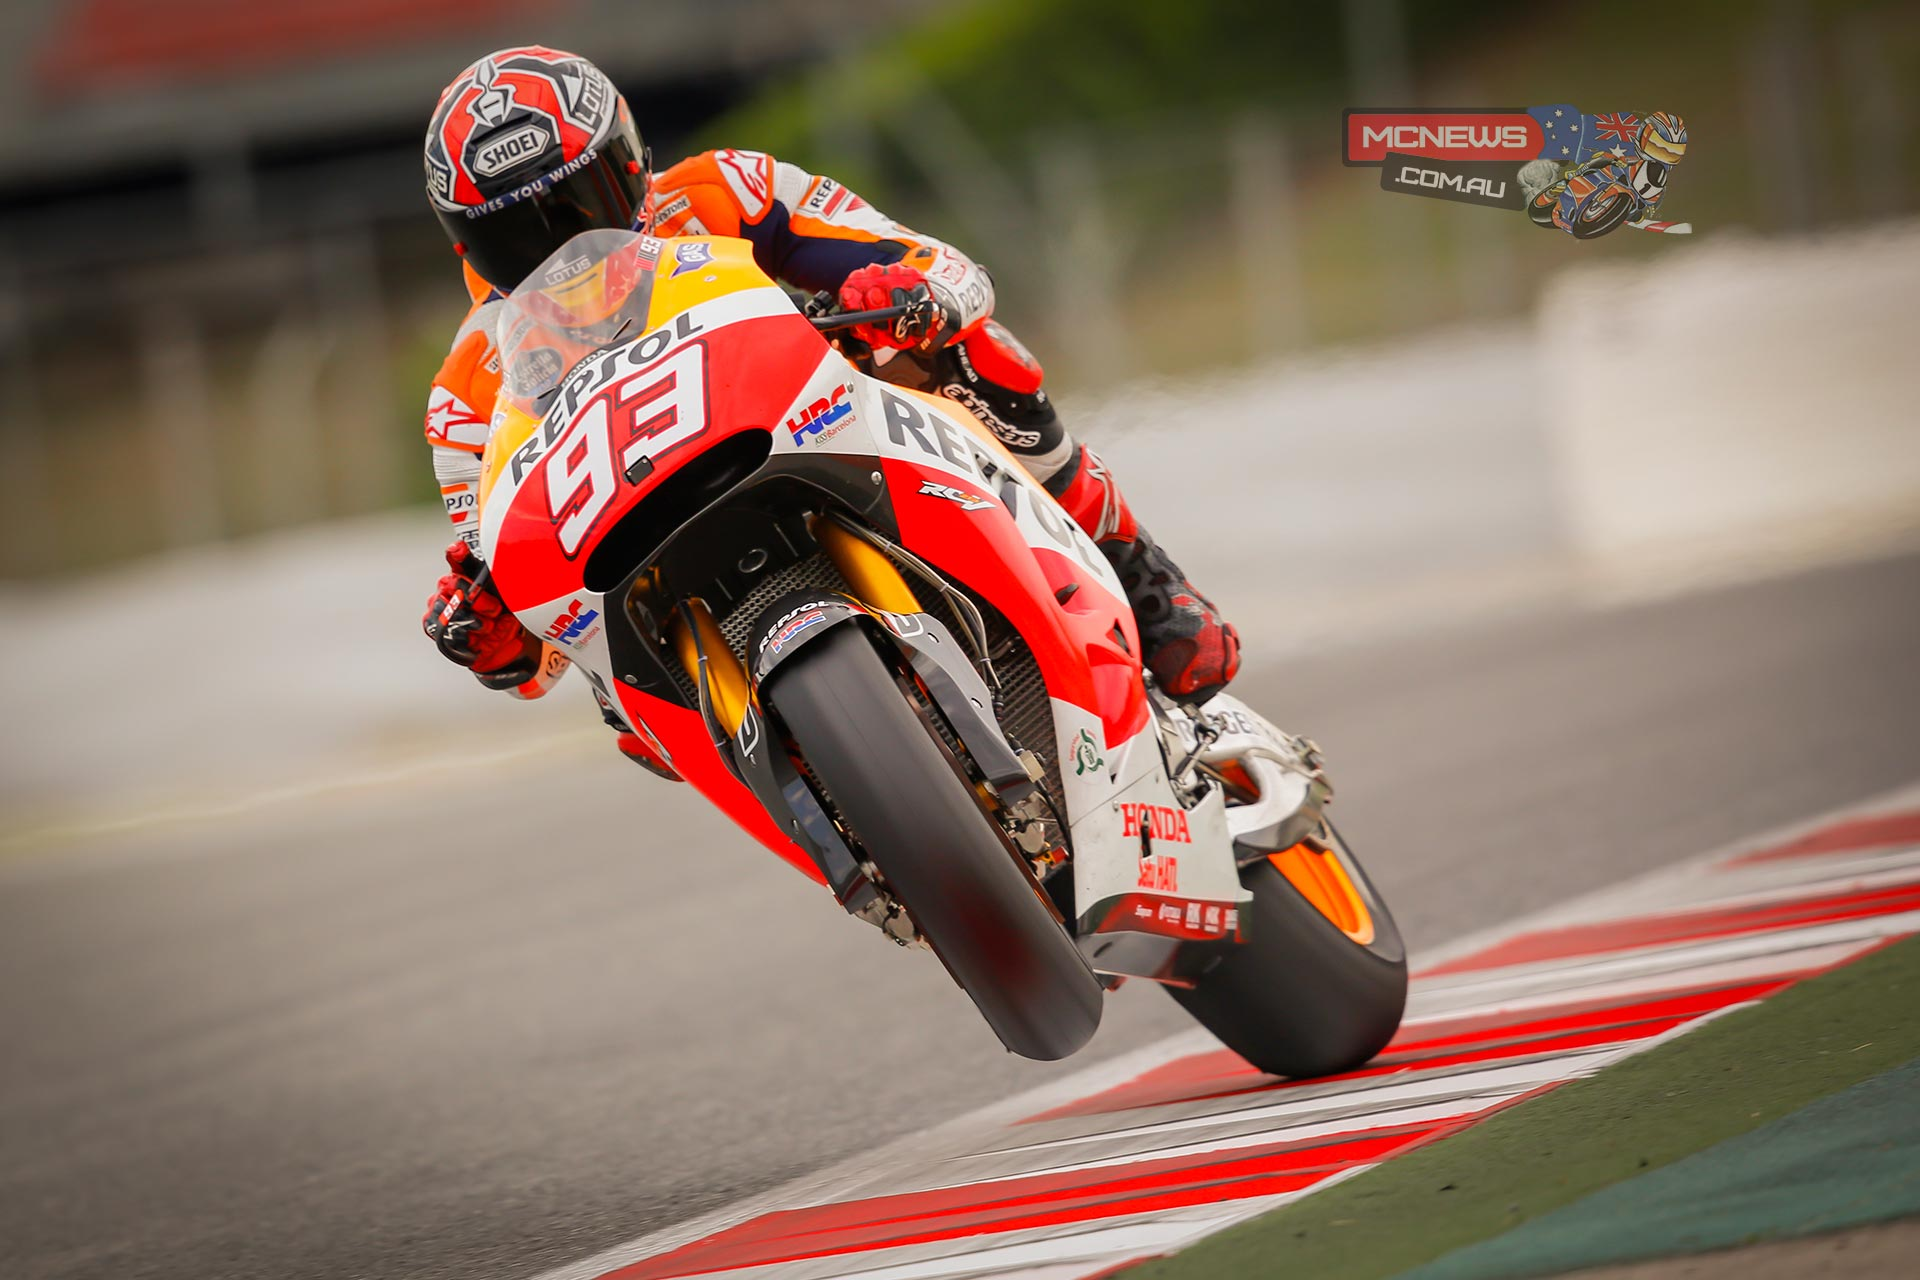 "Marc Marquez - 1st - 1'41.184 - ""Today we carried out a lot of testing: from the electronics, to the bike setup, to a bit of suspension work. I have to say, I felt very comfortable - even more so than during the Grand Prix weekend. There were also a few things that didn't completely work out, or that we weren't expecting, but this is also useful for us when it comes to picking up ideas and directions to go in for the future. Now we have to get ready for the next race in Assen"""